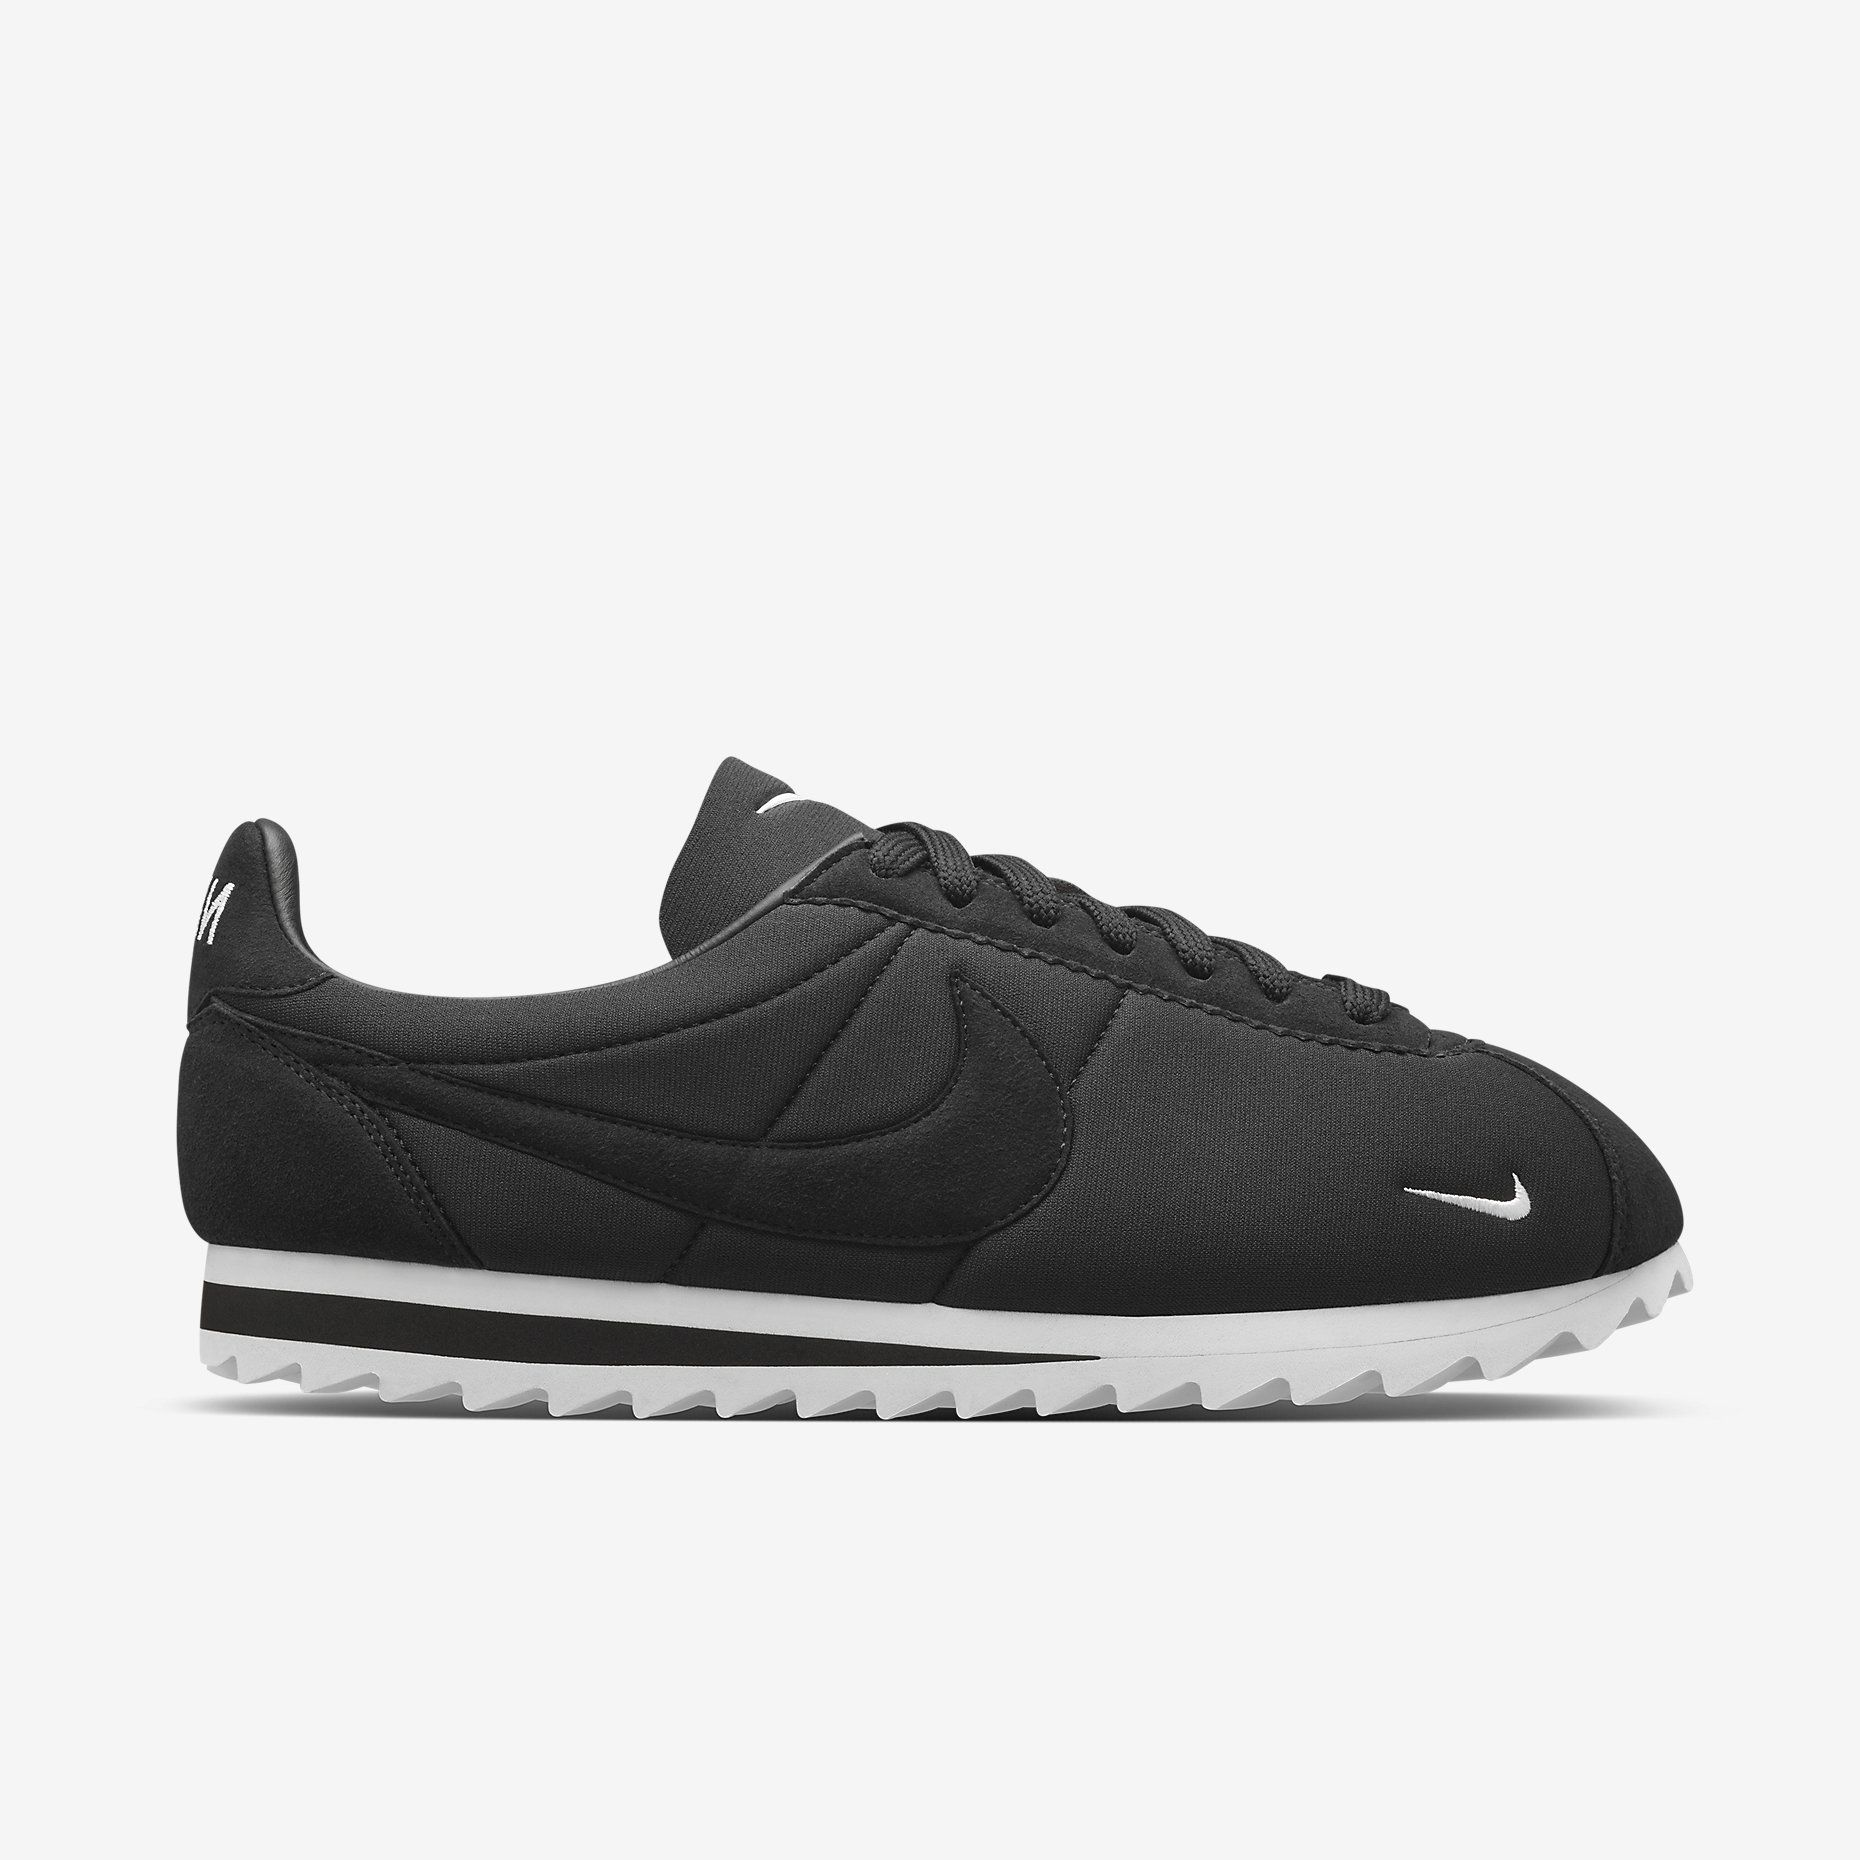 low priced 12c91 7d02f Nike Cortez Shark SP Mens Shoe. Nike Store Bestia, Nike Store, Nike Baratos